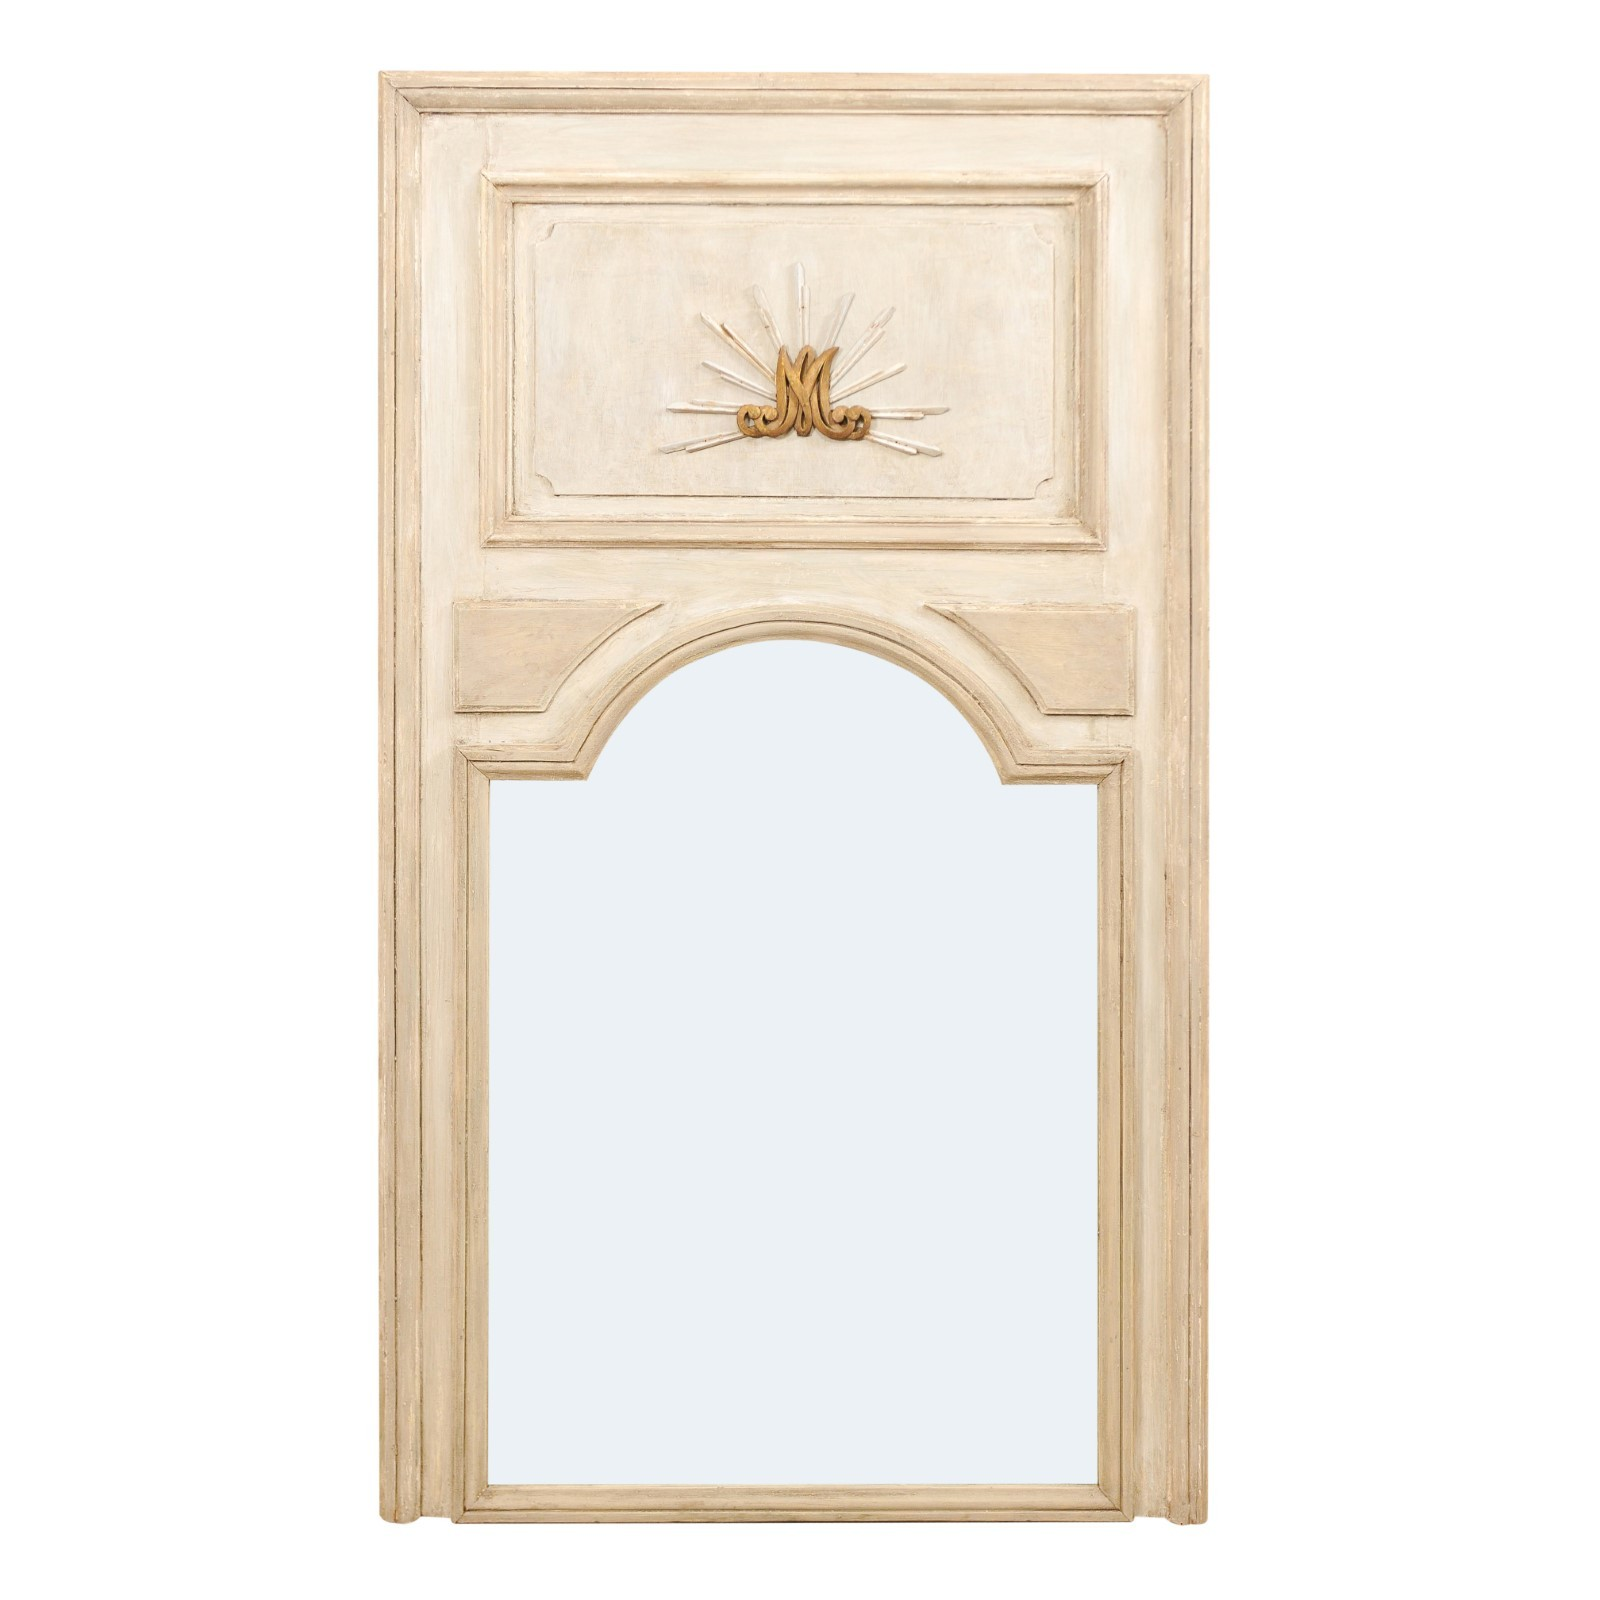 French 19th C. Trumeau Mirror w/Arch, 6+ ft